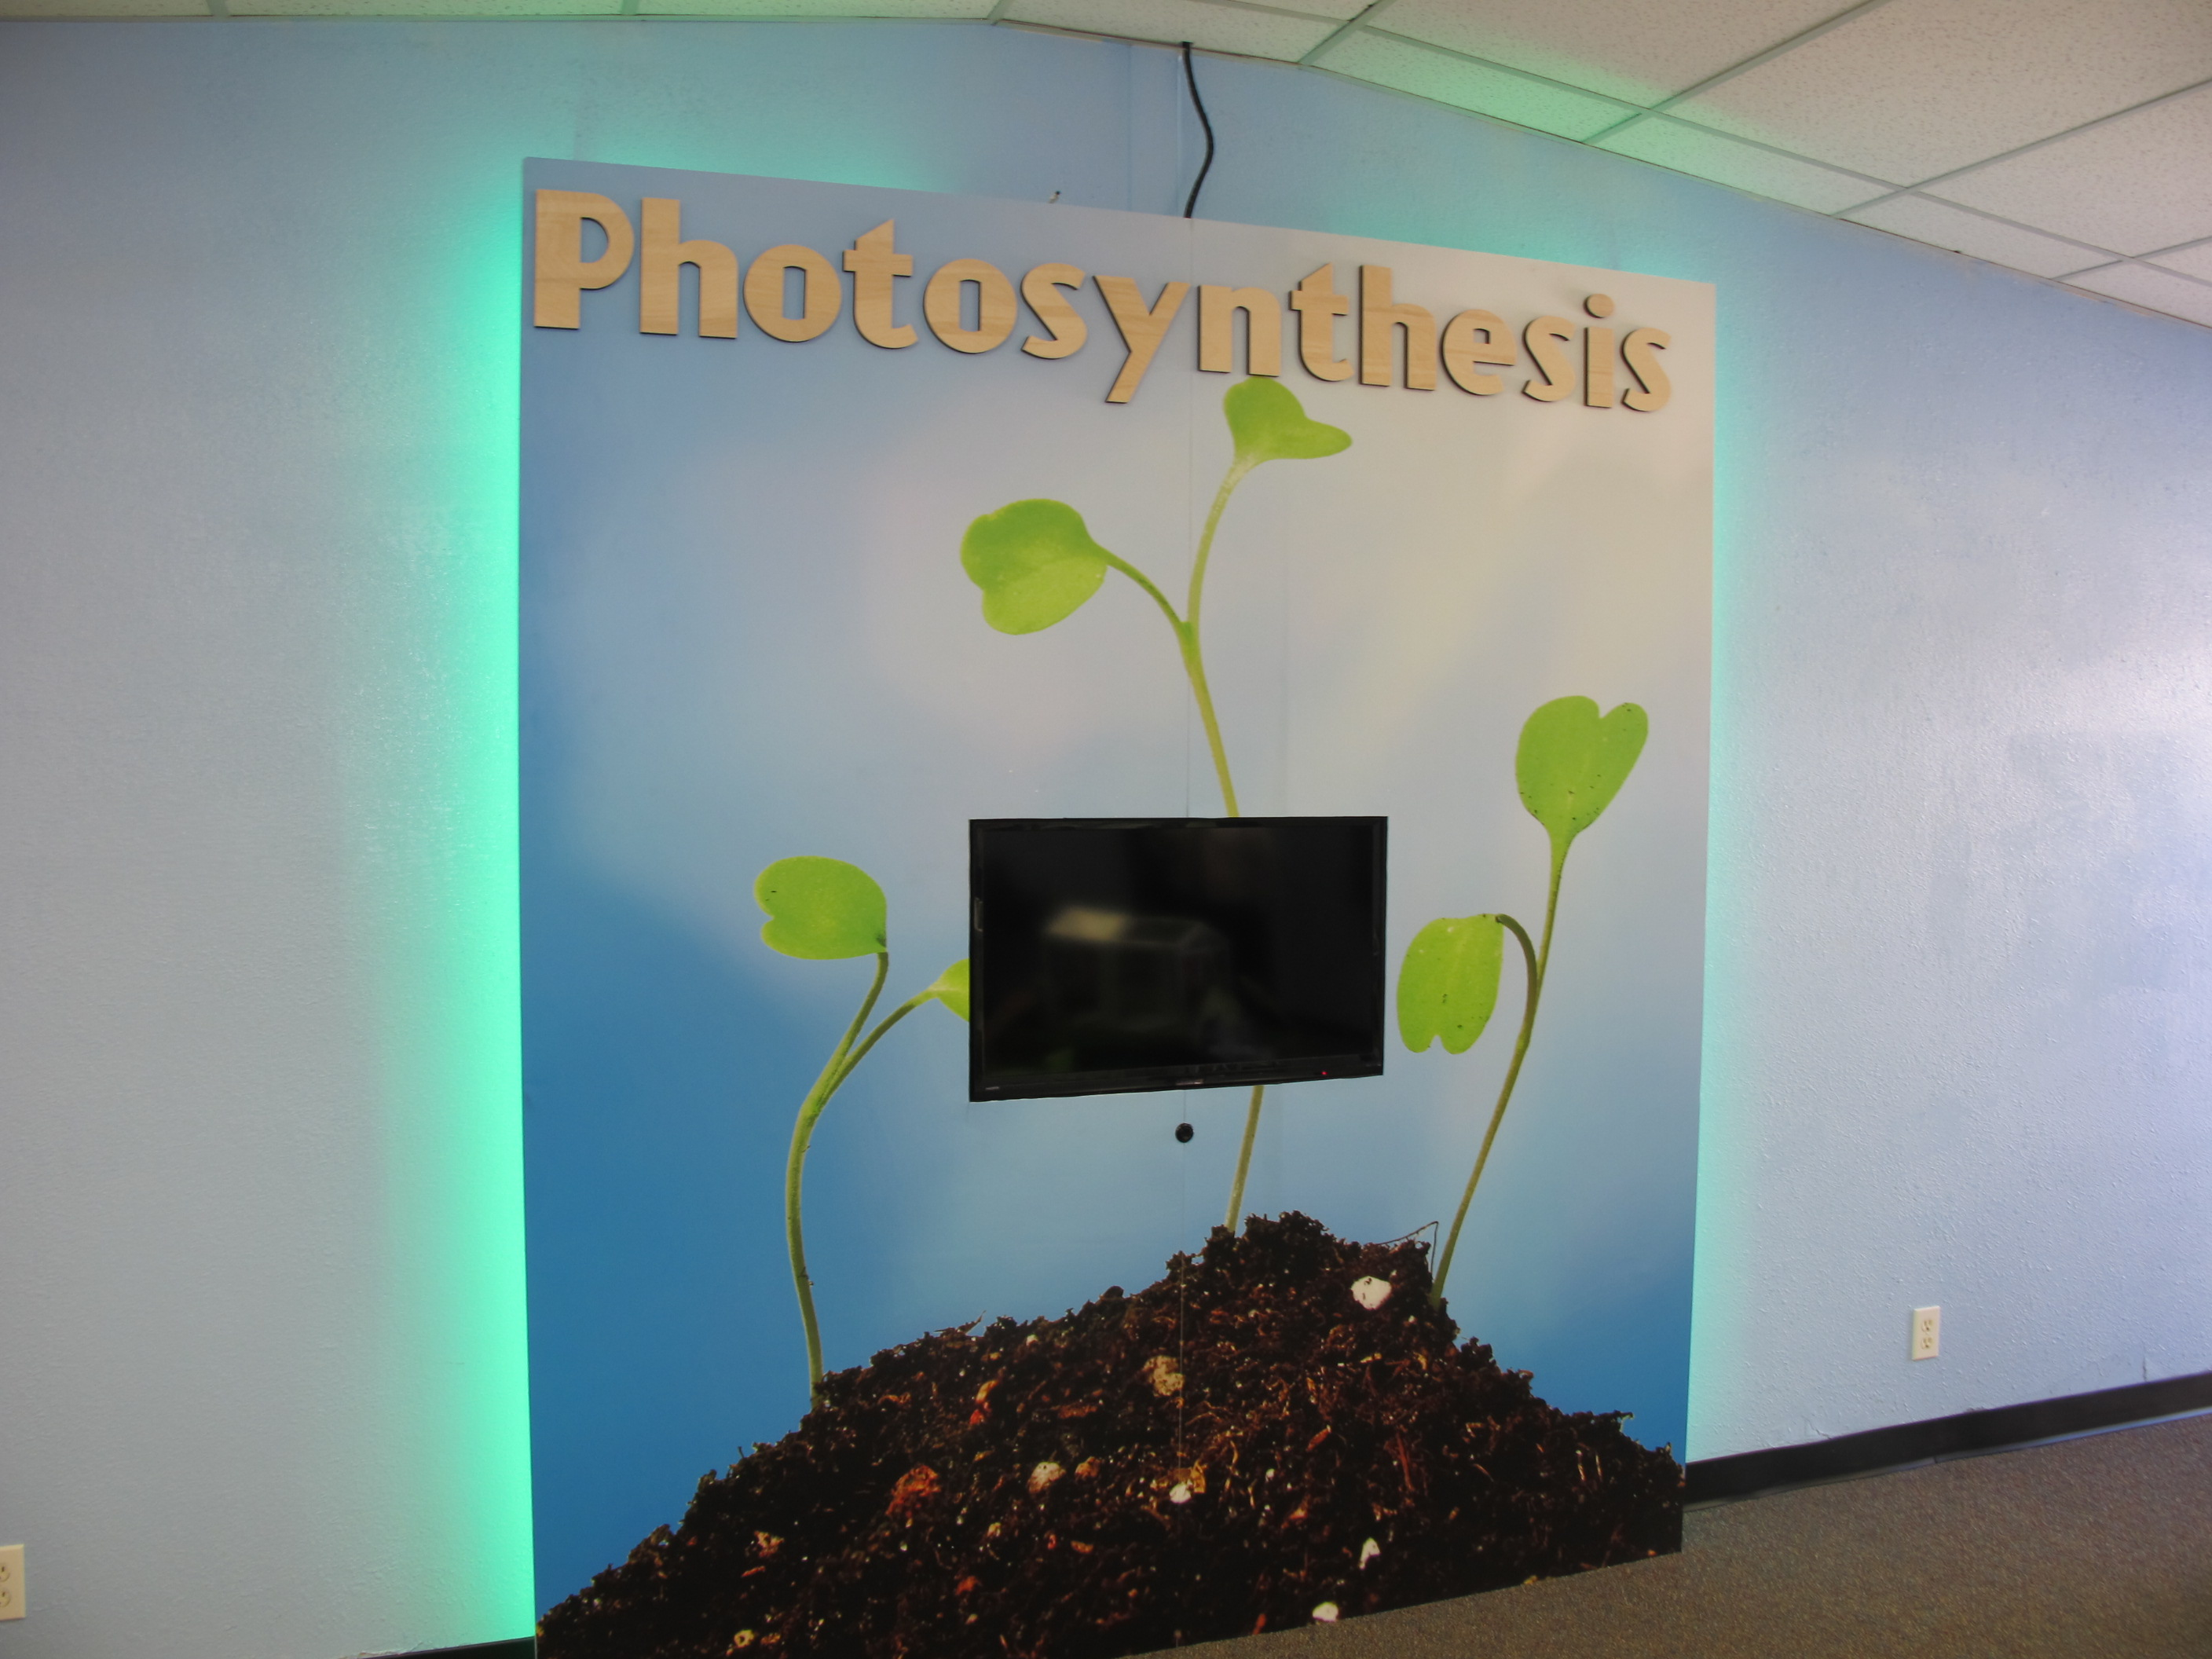 Roosevelt School District proud to house Center of Sustainability RooseveltPhotosynthesis